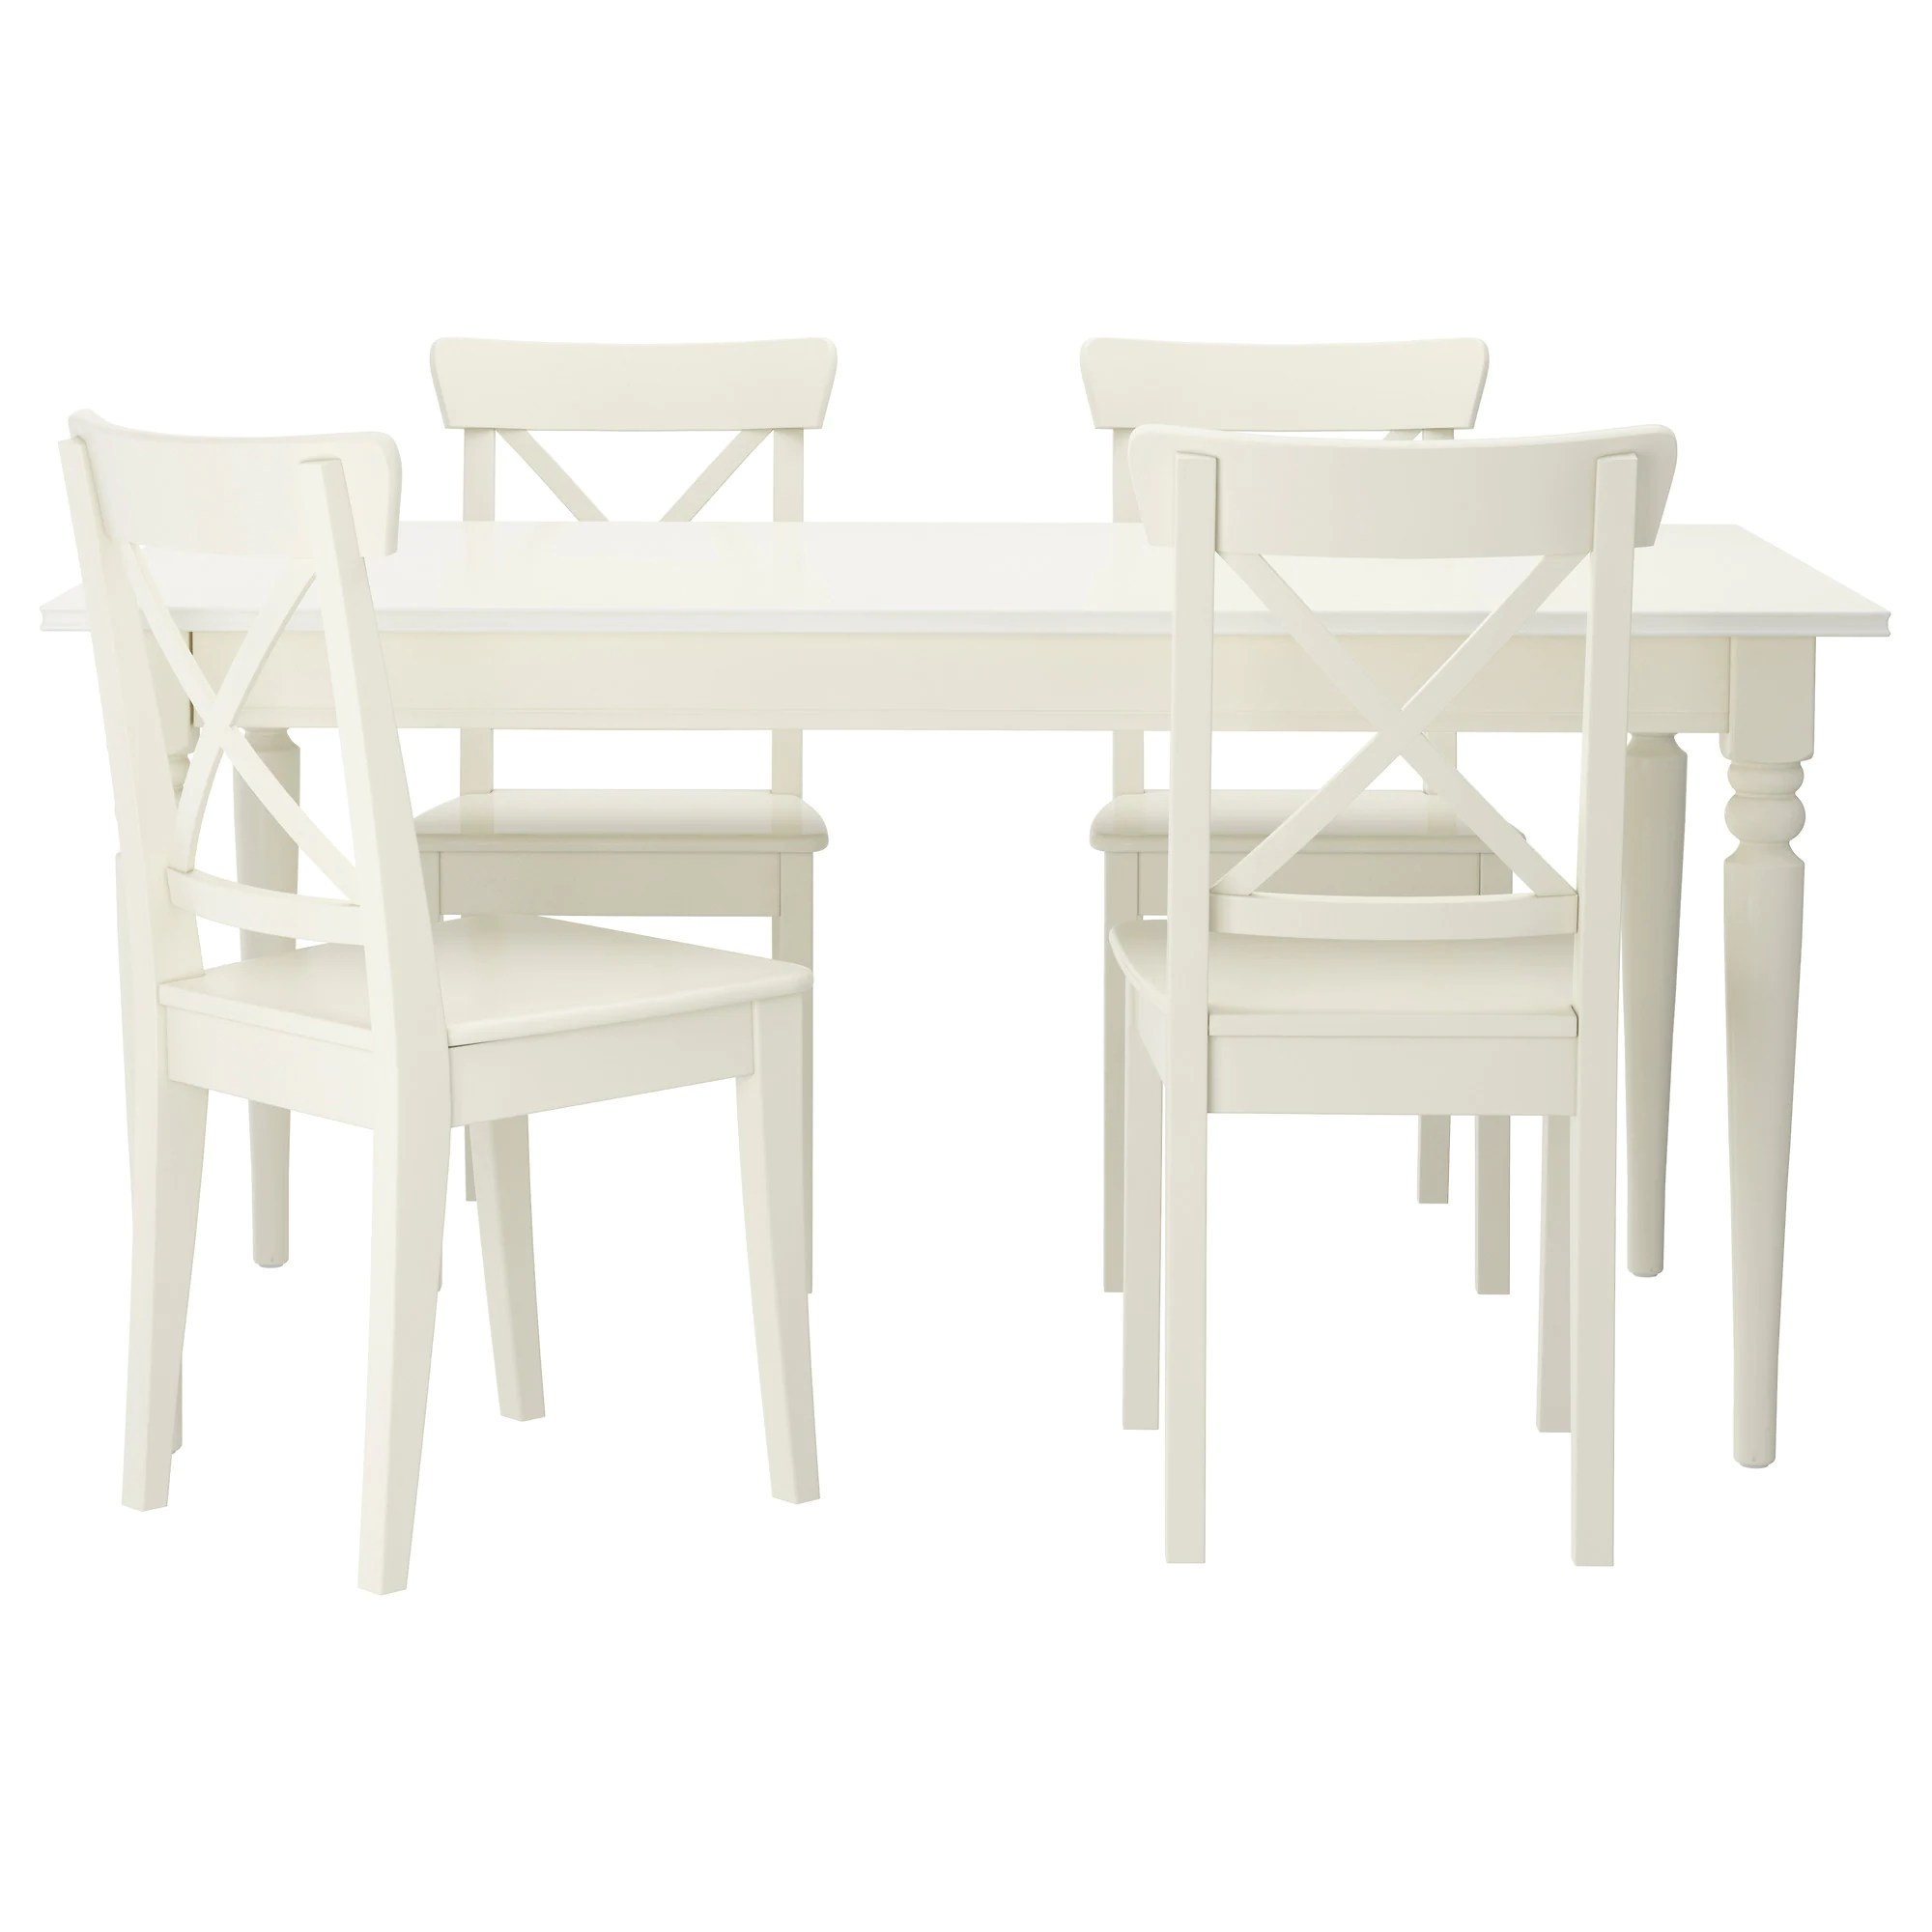 S kitchen table chairs